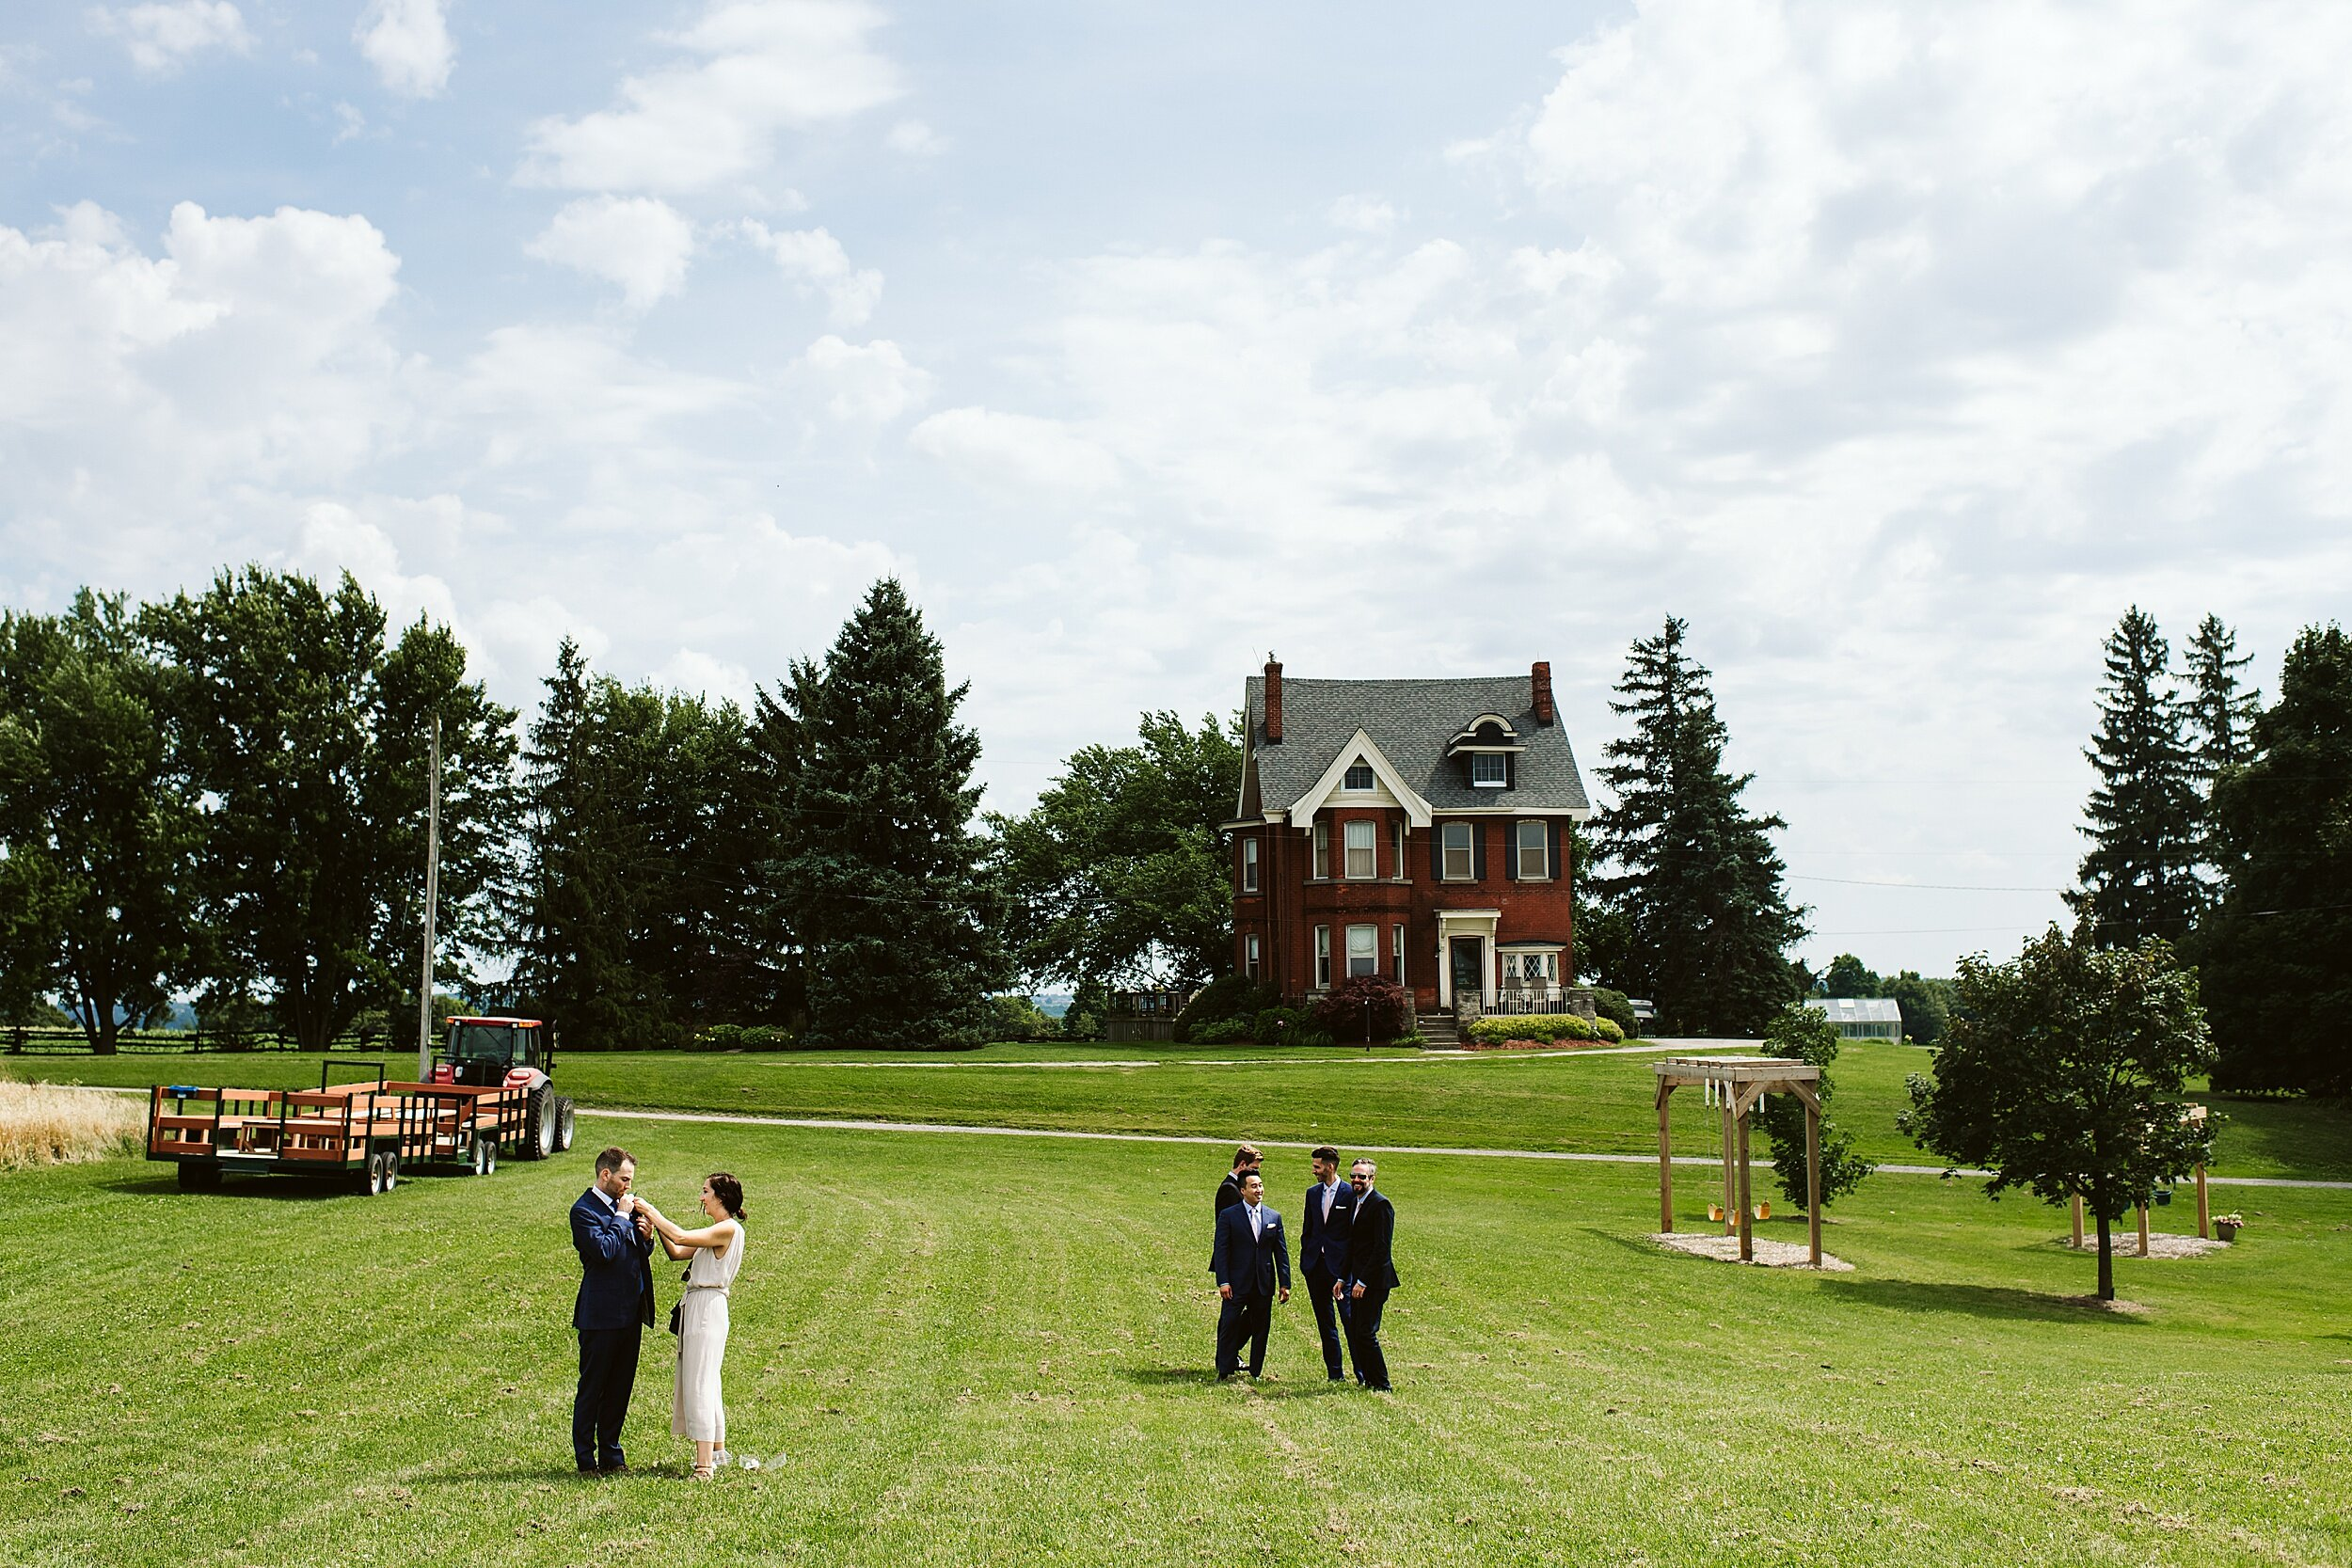 Glen_Drummon_Farm_Wedding_Toronto_Photographers_Fox_Photography_Dyments_0015.jpg